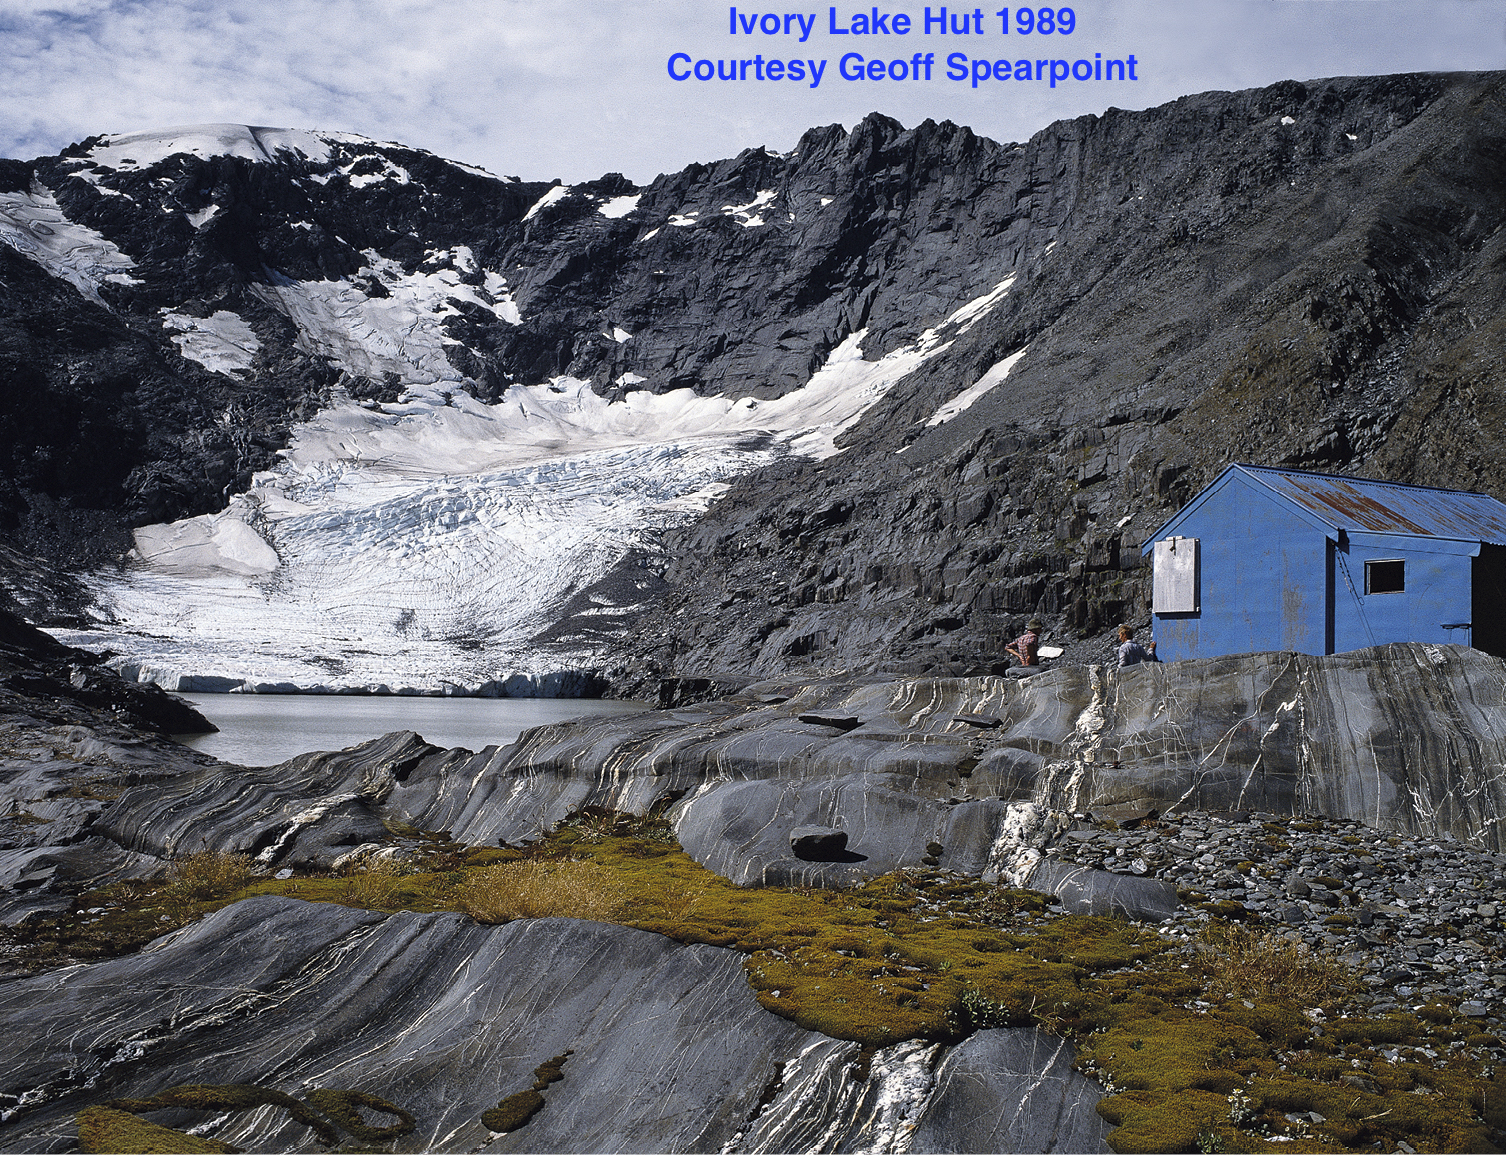 Ivory Lake Hut, a science hut constructed to support a team of glaciologists and hydrologists studying this retreating glacier.